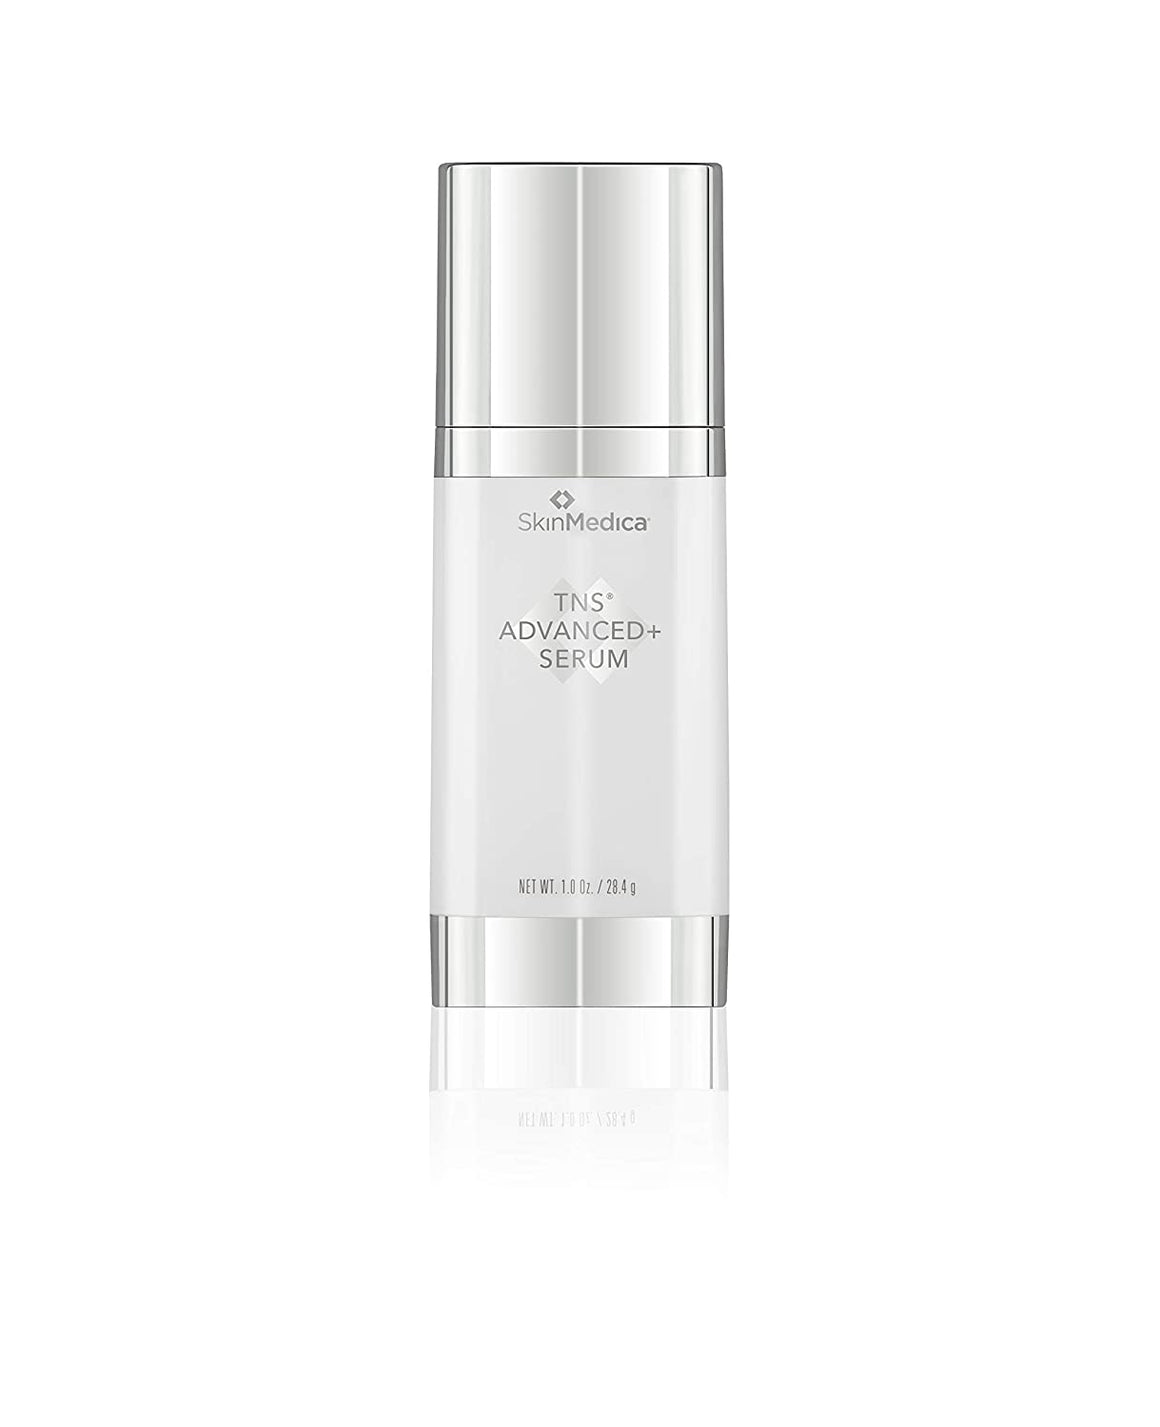 SkinMedica TNS Advanced+ Serum, 1 oz